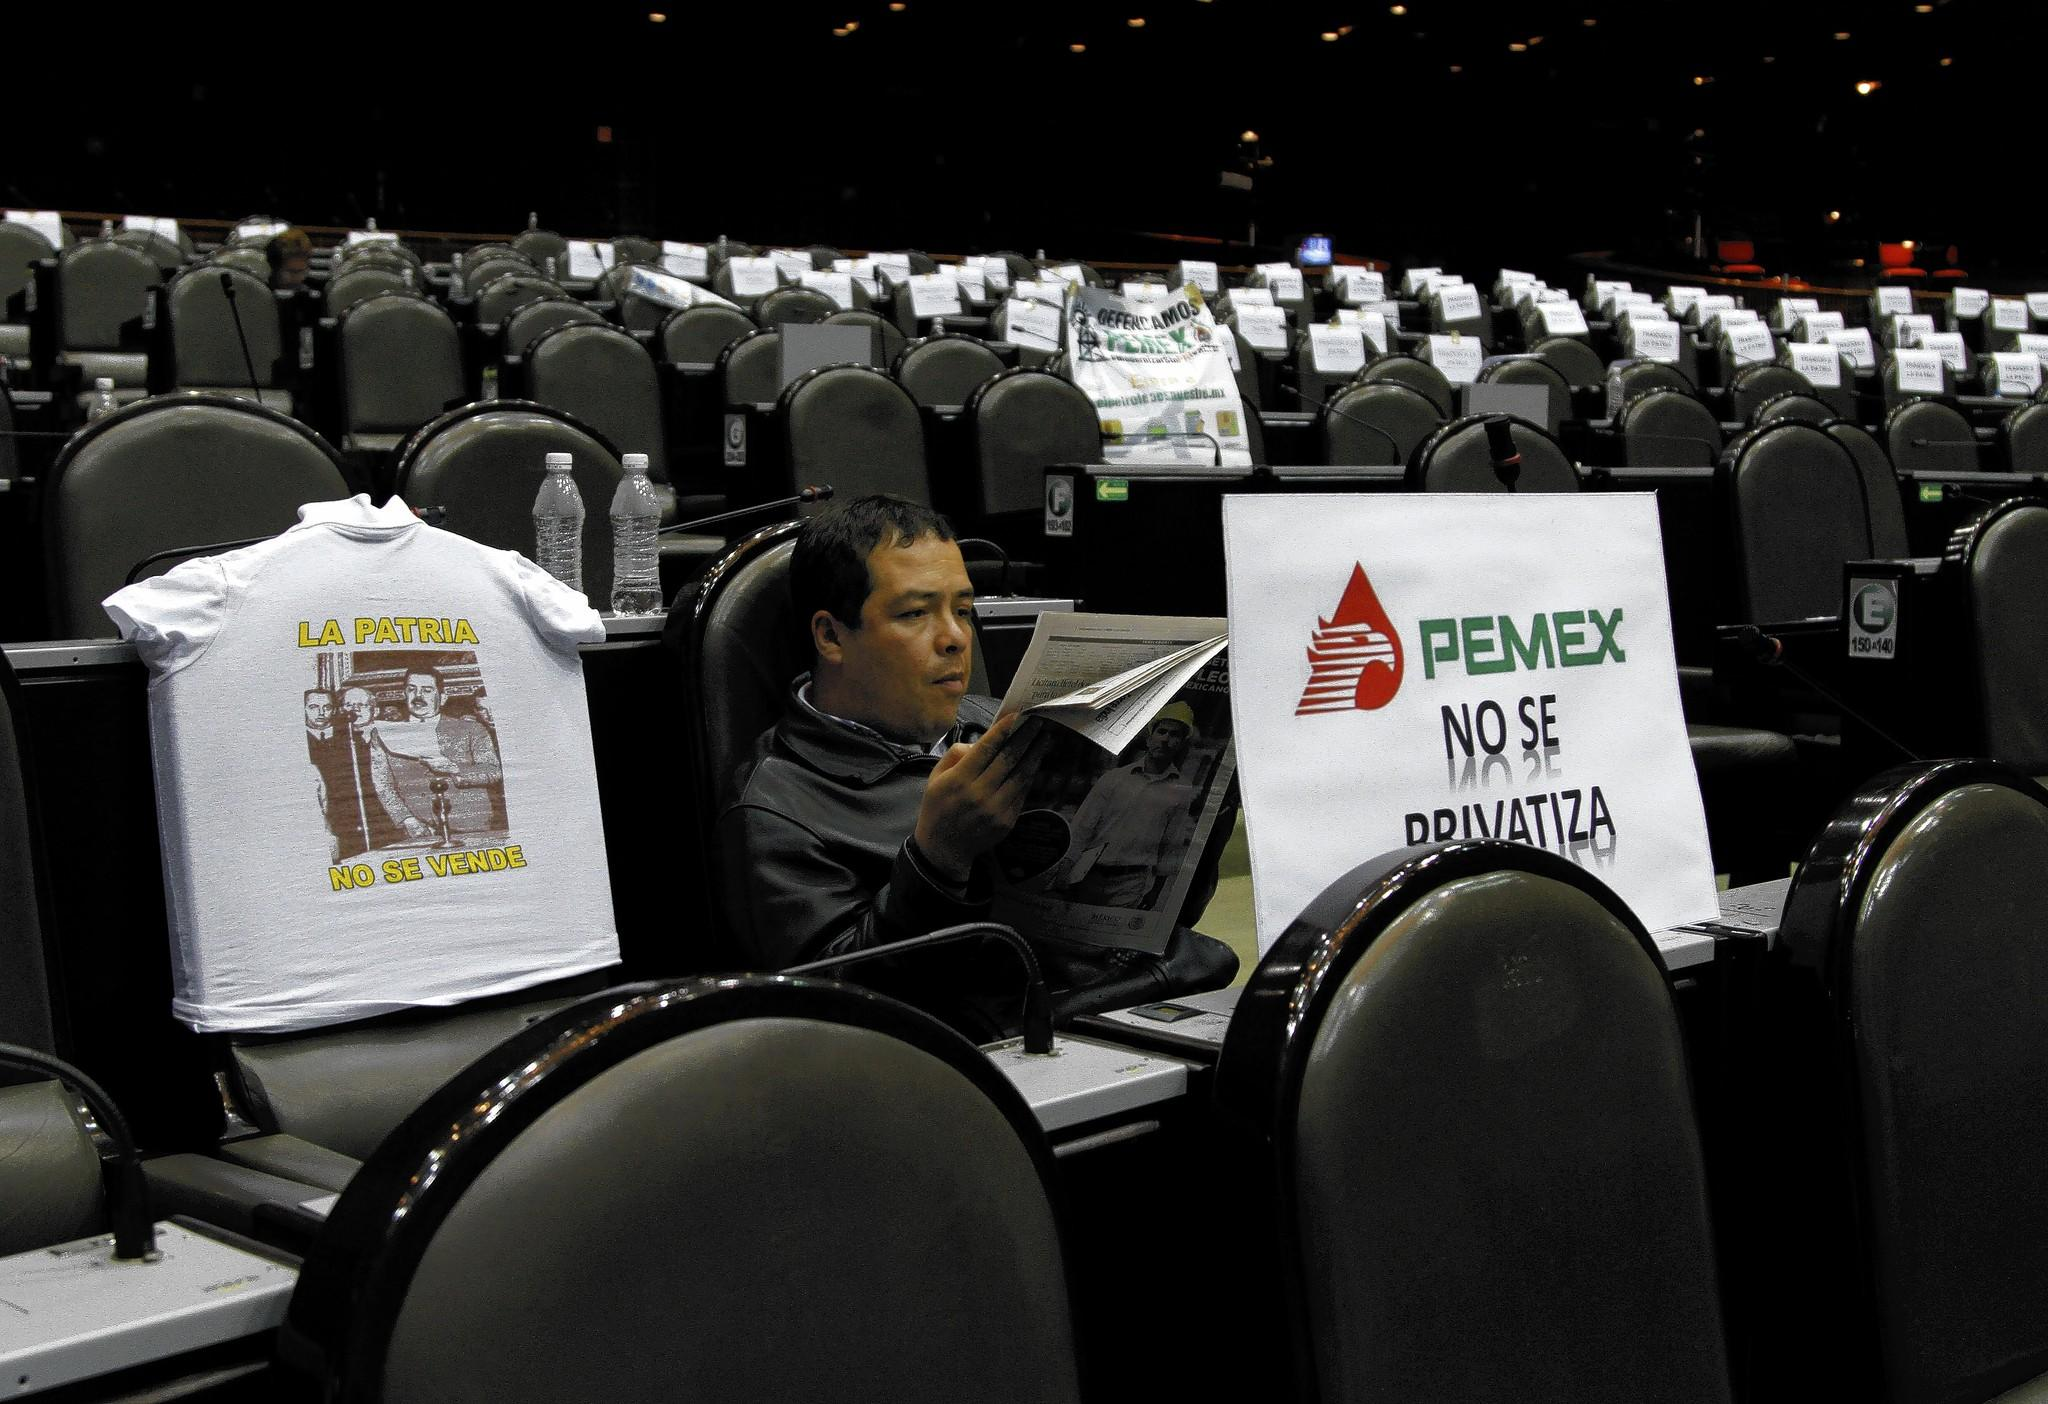 A lawmaker reads a newspaper this month, a day after leftists tried to block discussion of Mexico's energy reform bill. The legislation's advance is the latest blow to the Mexican political left.